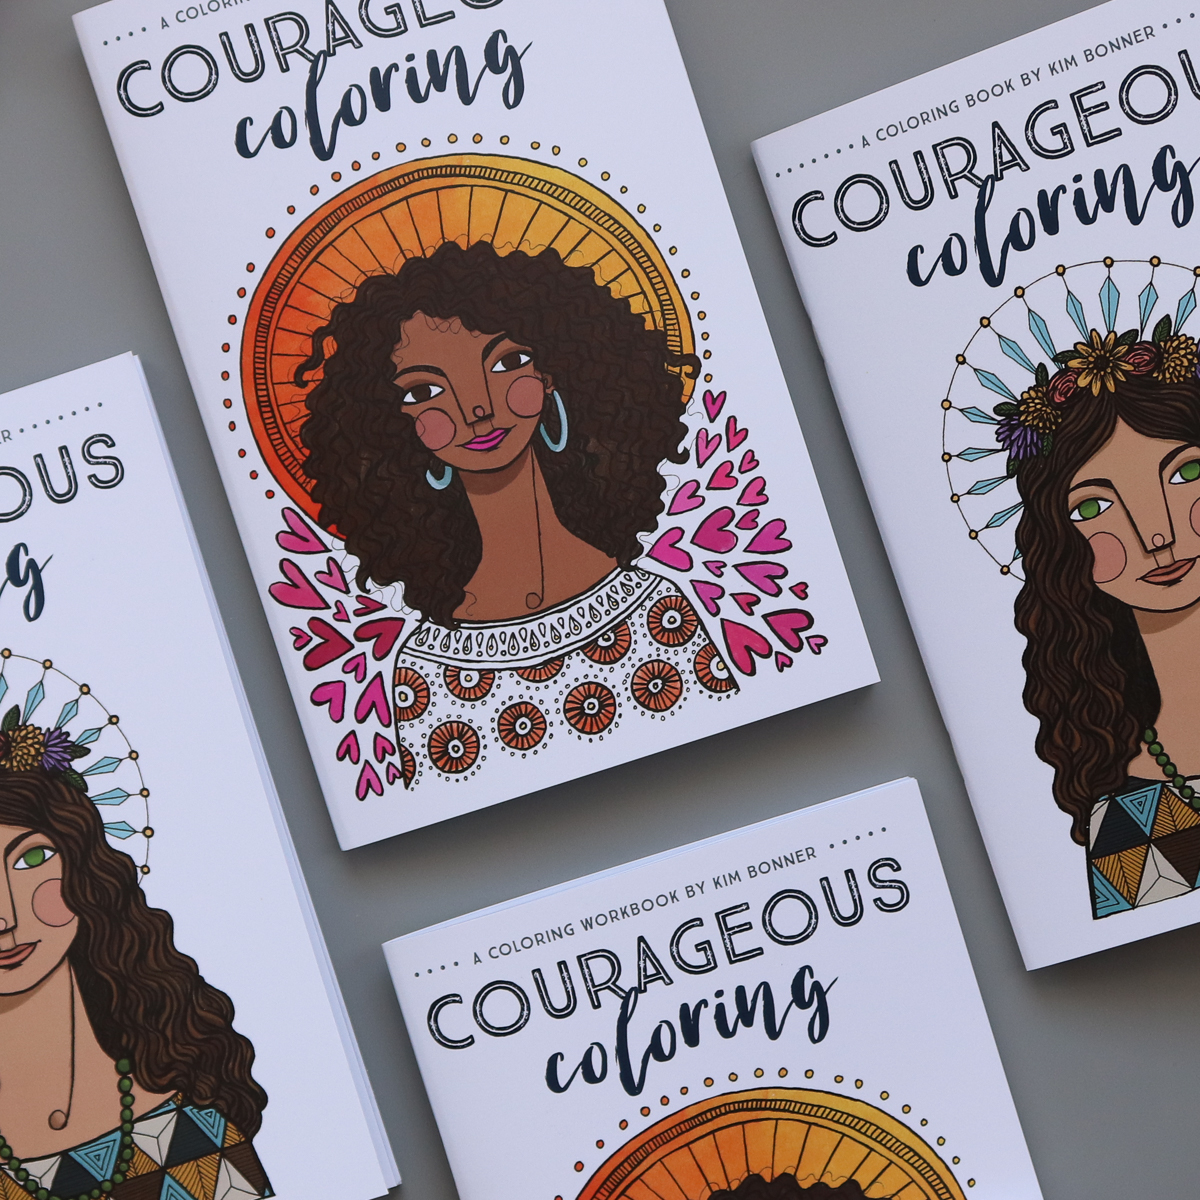 Courageous Coloring books and workbooks by Kim Bonner